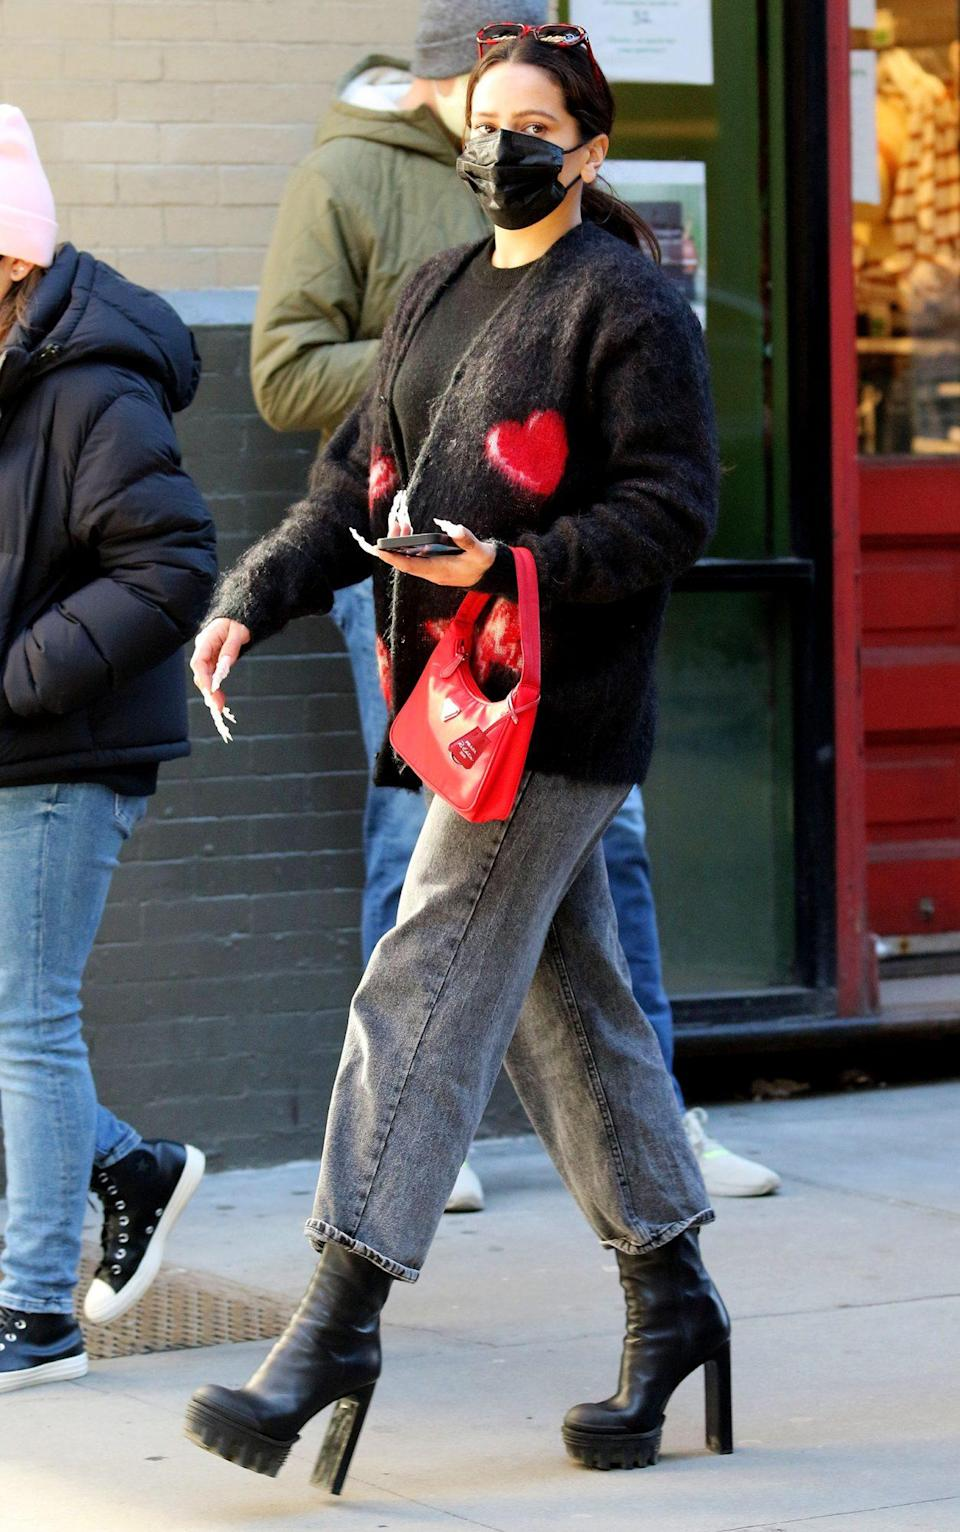 <p>Rosalía heads to eat pizza in N.Y.C.'s Soho area on Sunday, wearing a black sweater and sky-high black boots.</p>